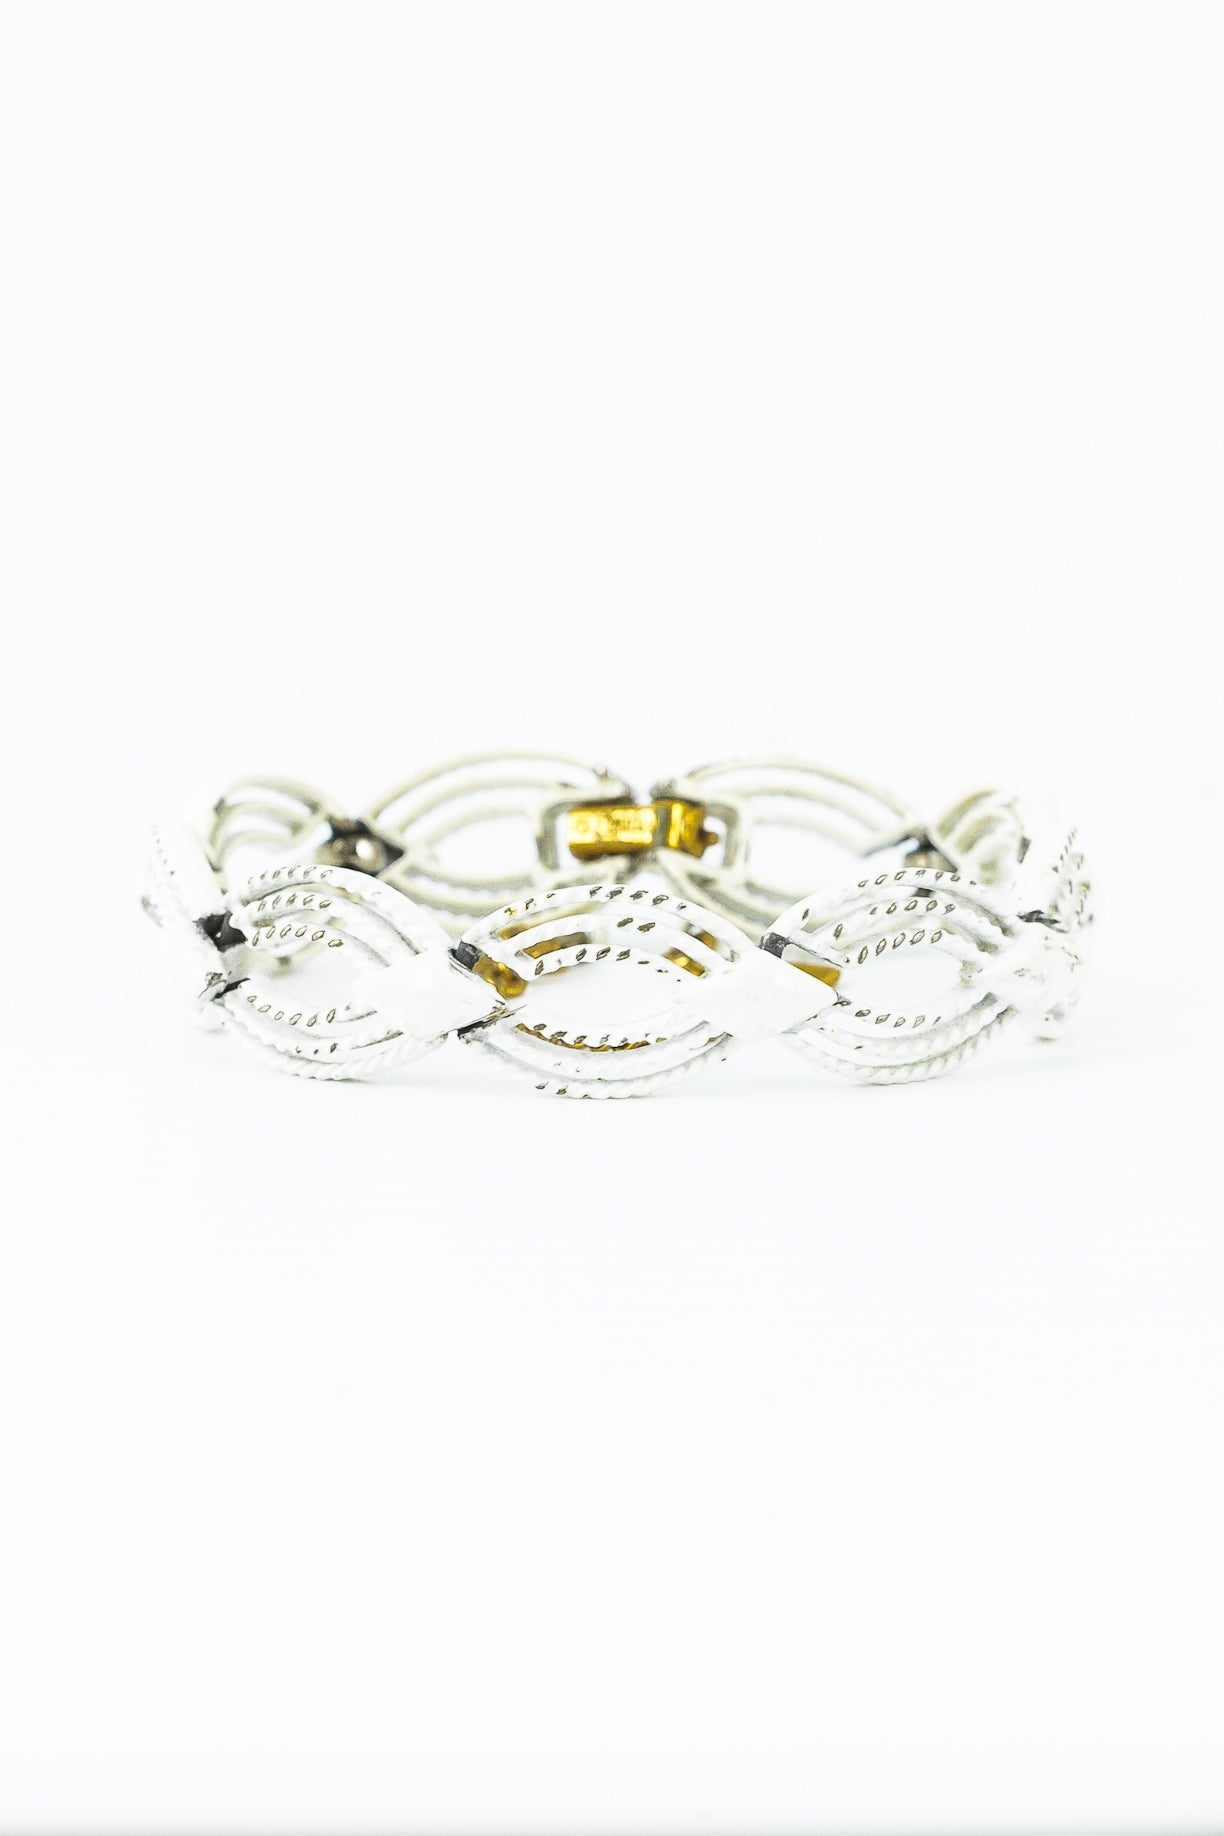 60's__Monet__White Oval Link Bracelet